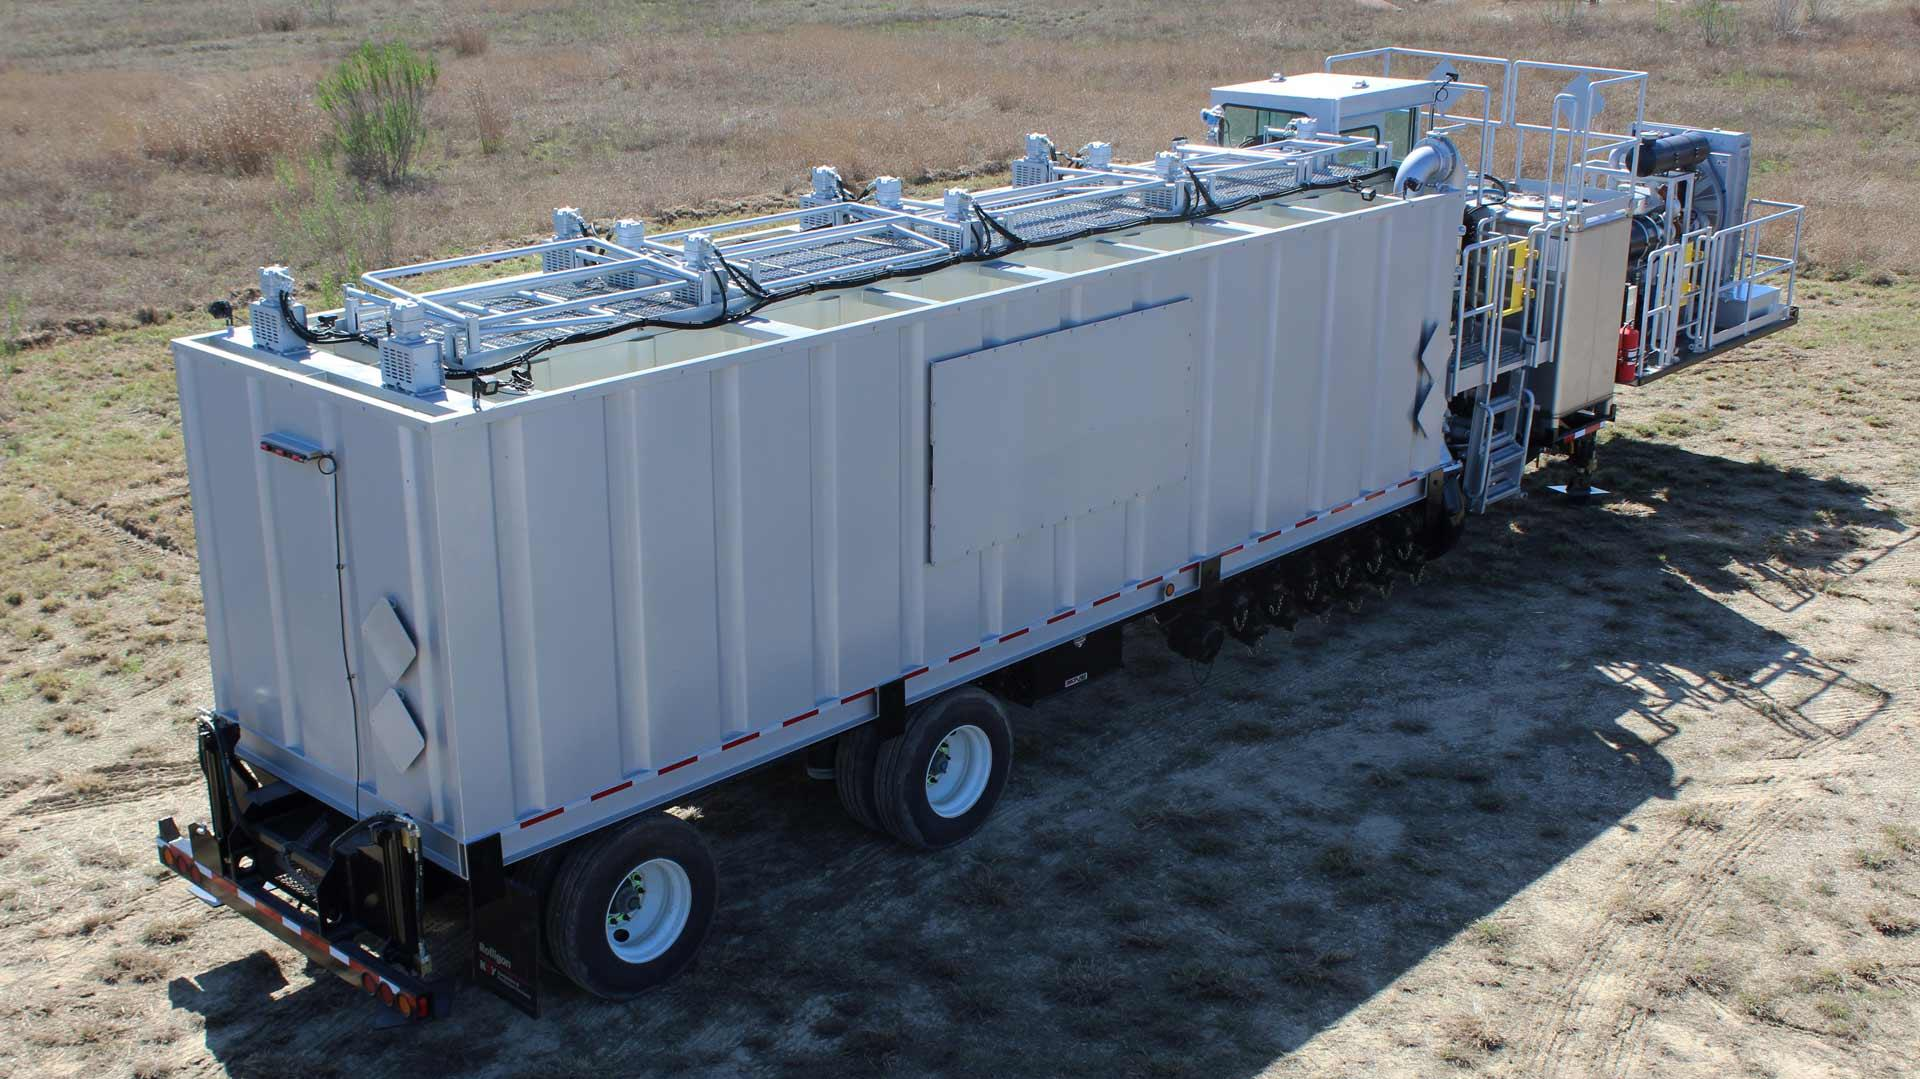 Aerial view of a Trailer-Mounted Hydration Unit